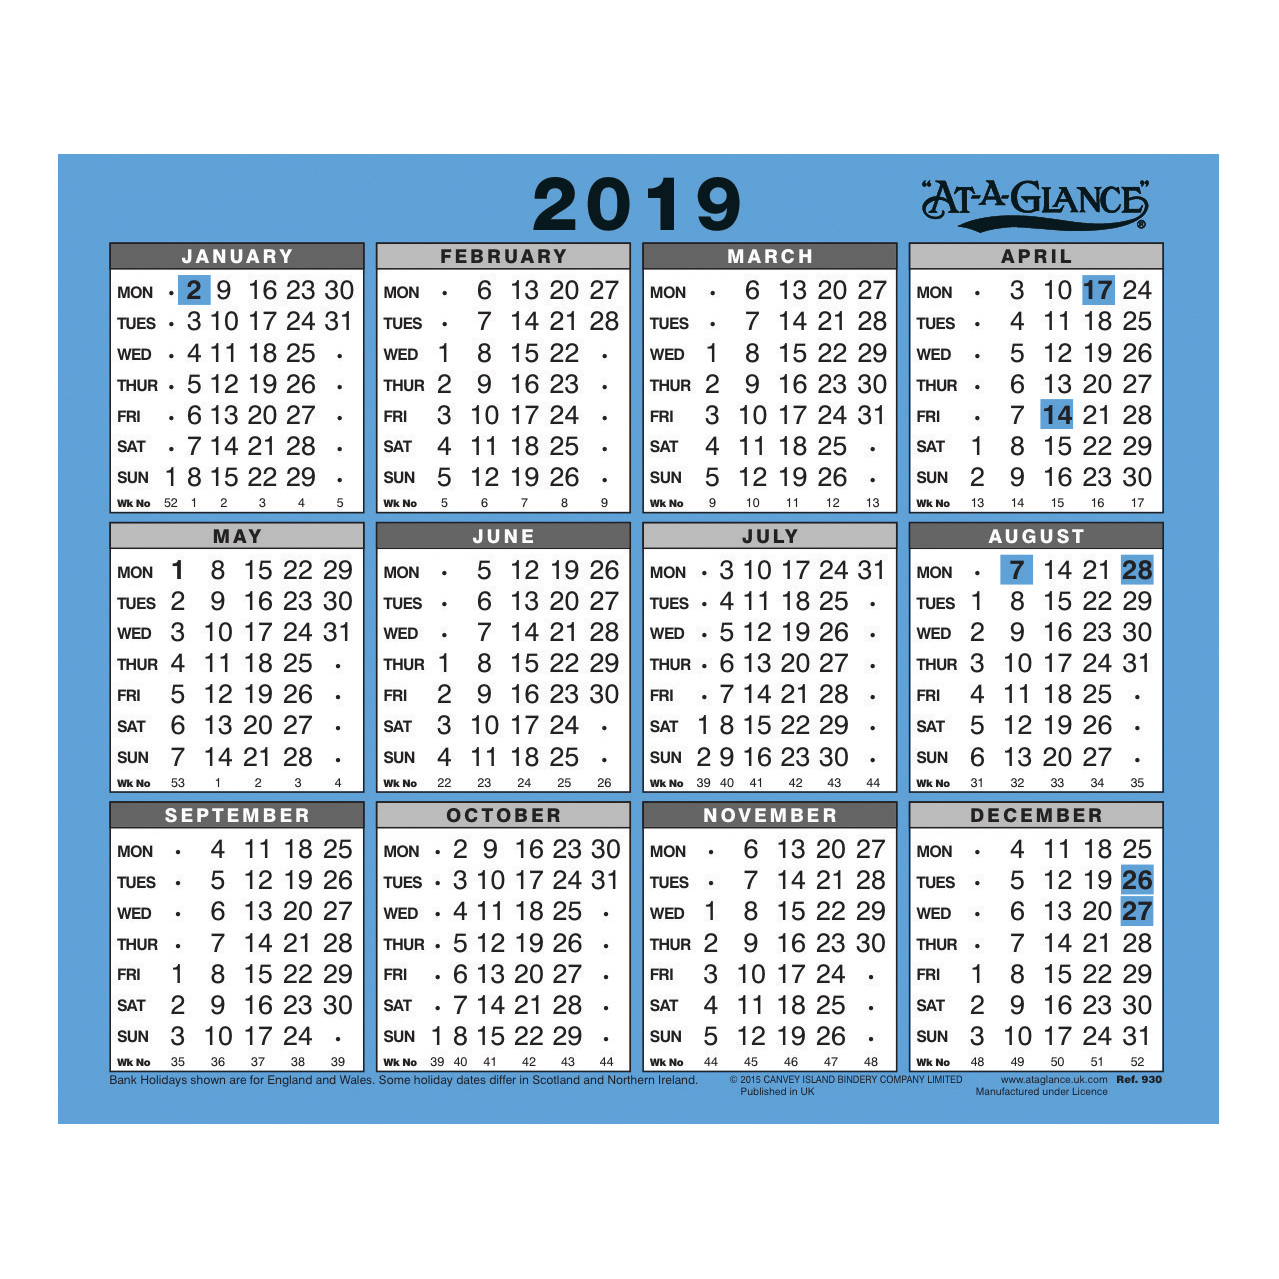 at a glance 2019 walldesk calendar year to view gloss board binding